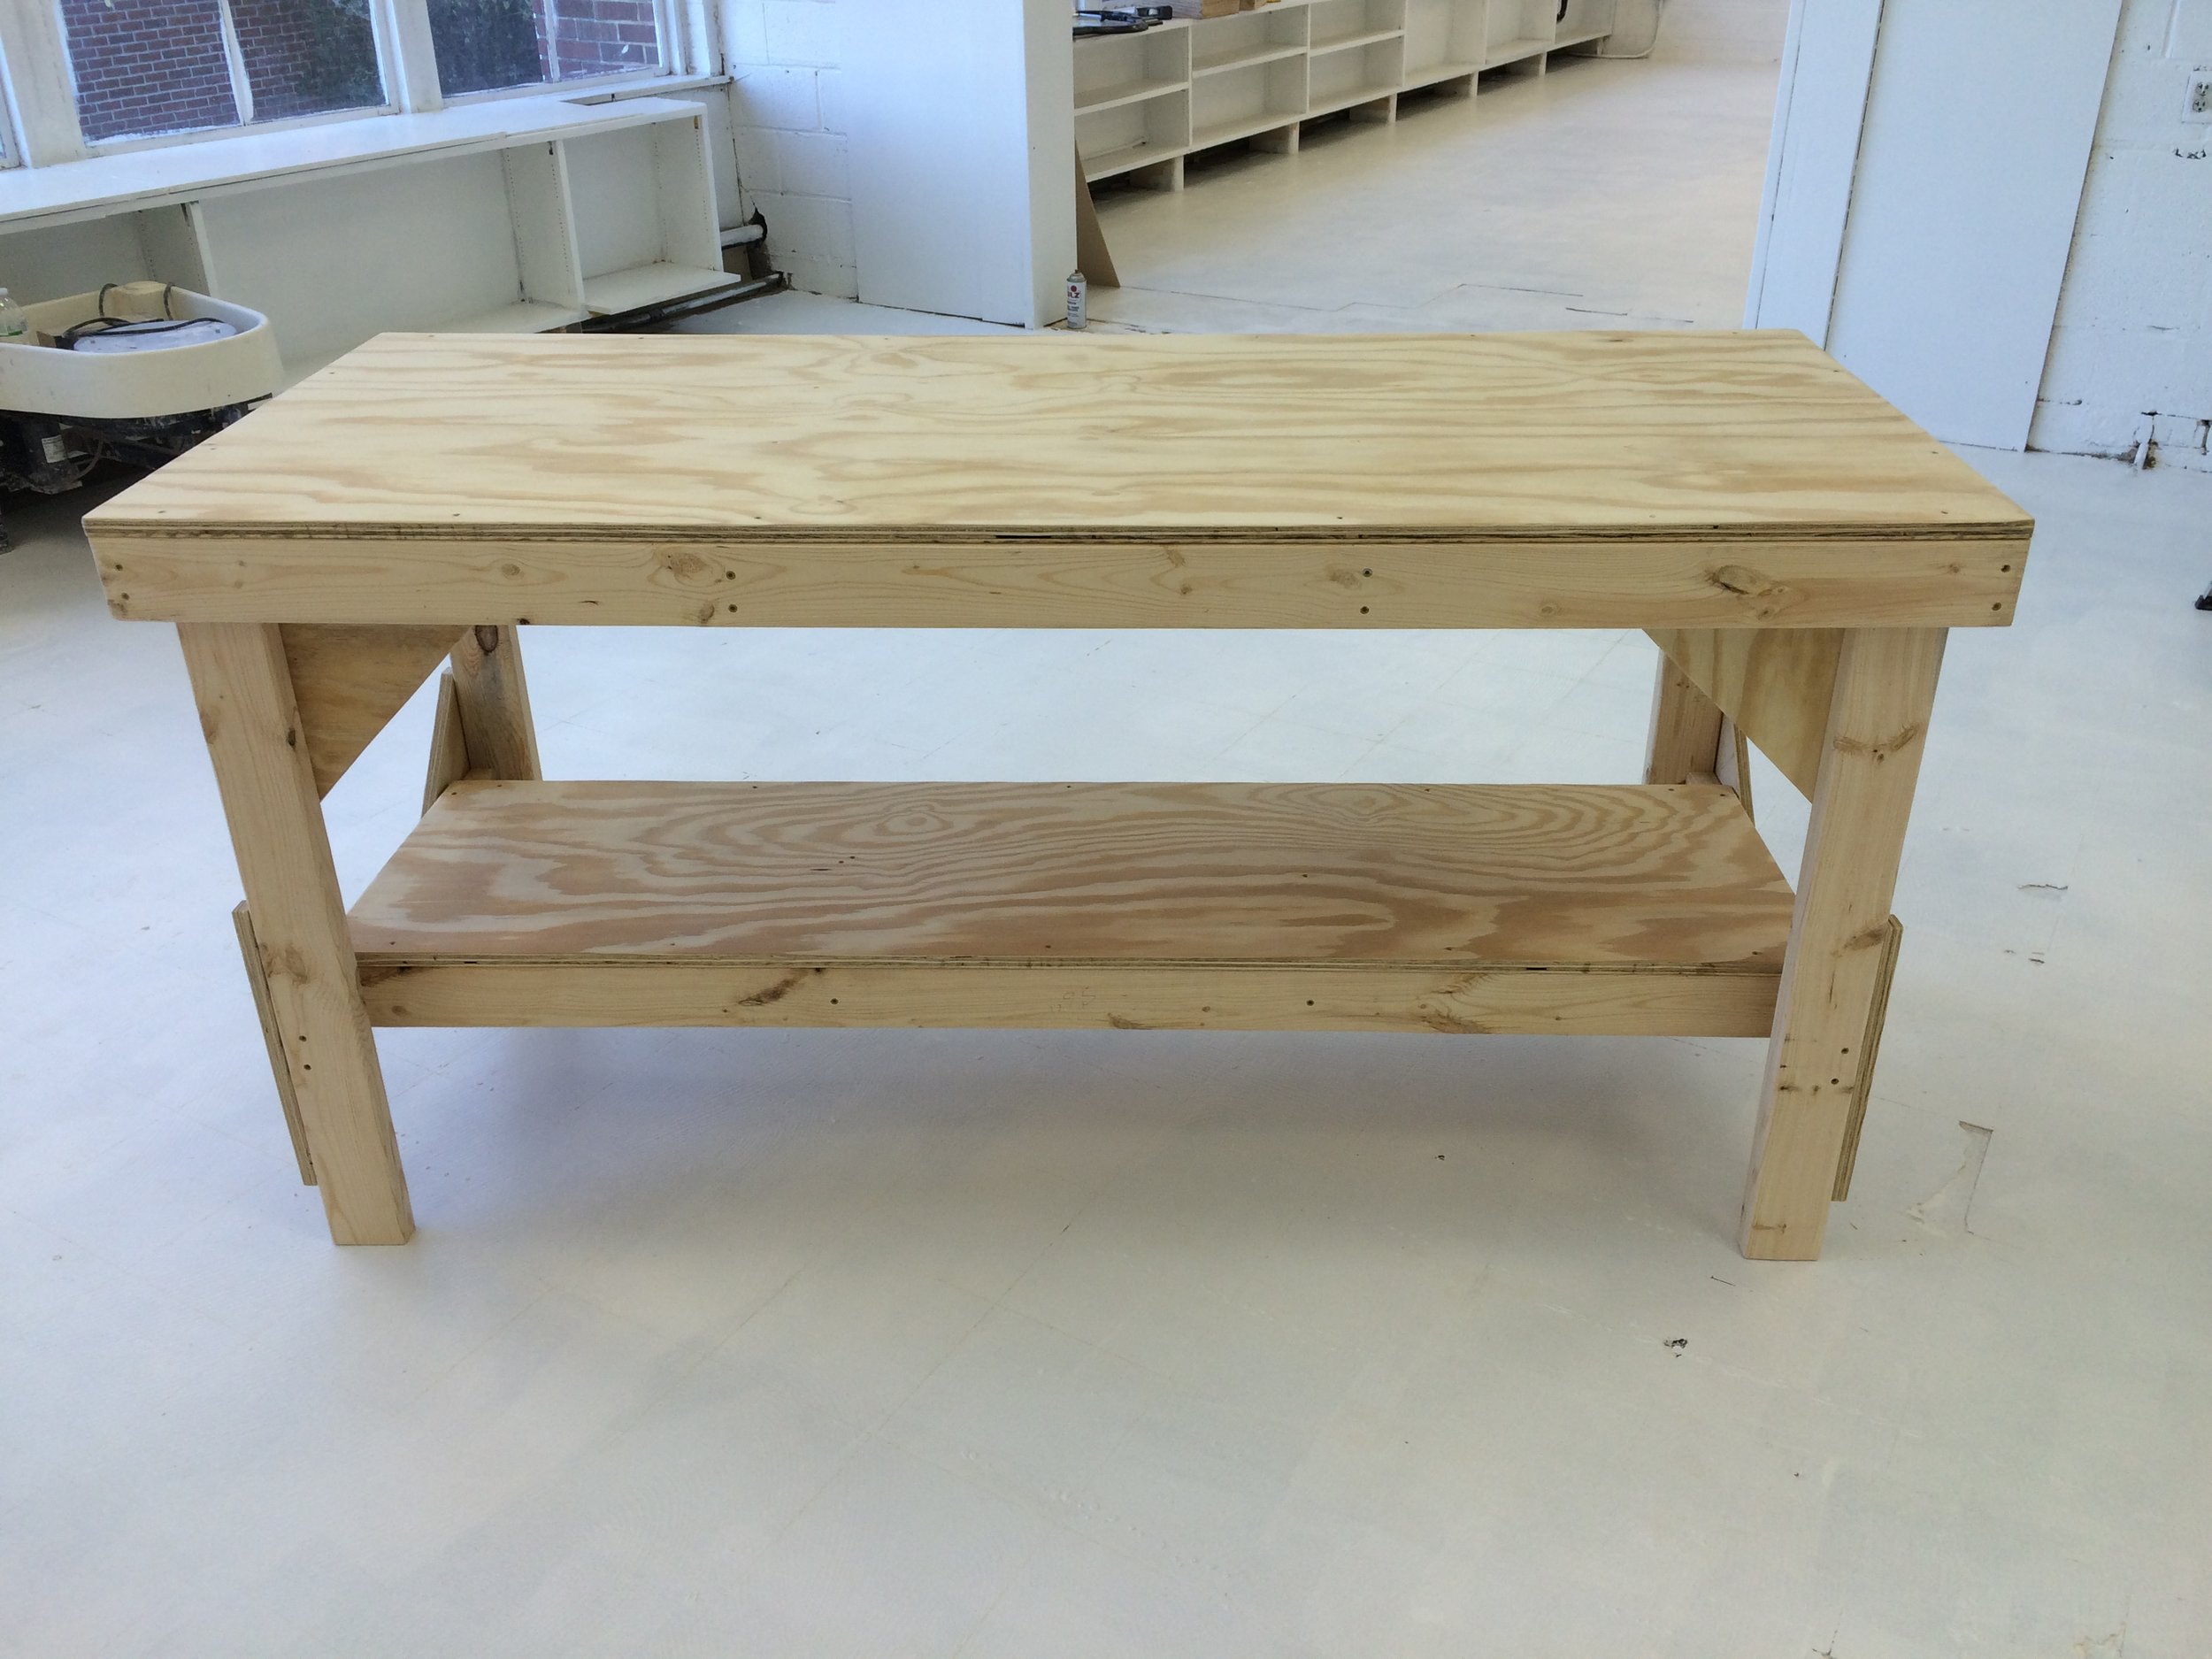 Pottery Work Table - A sturdy